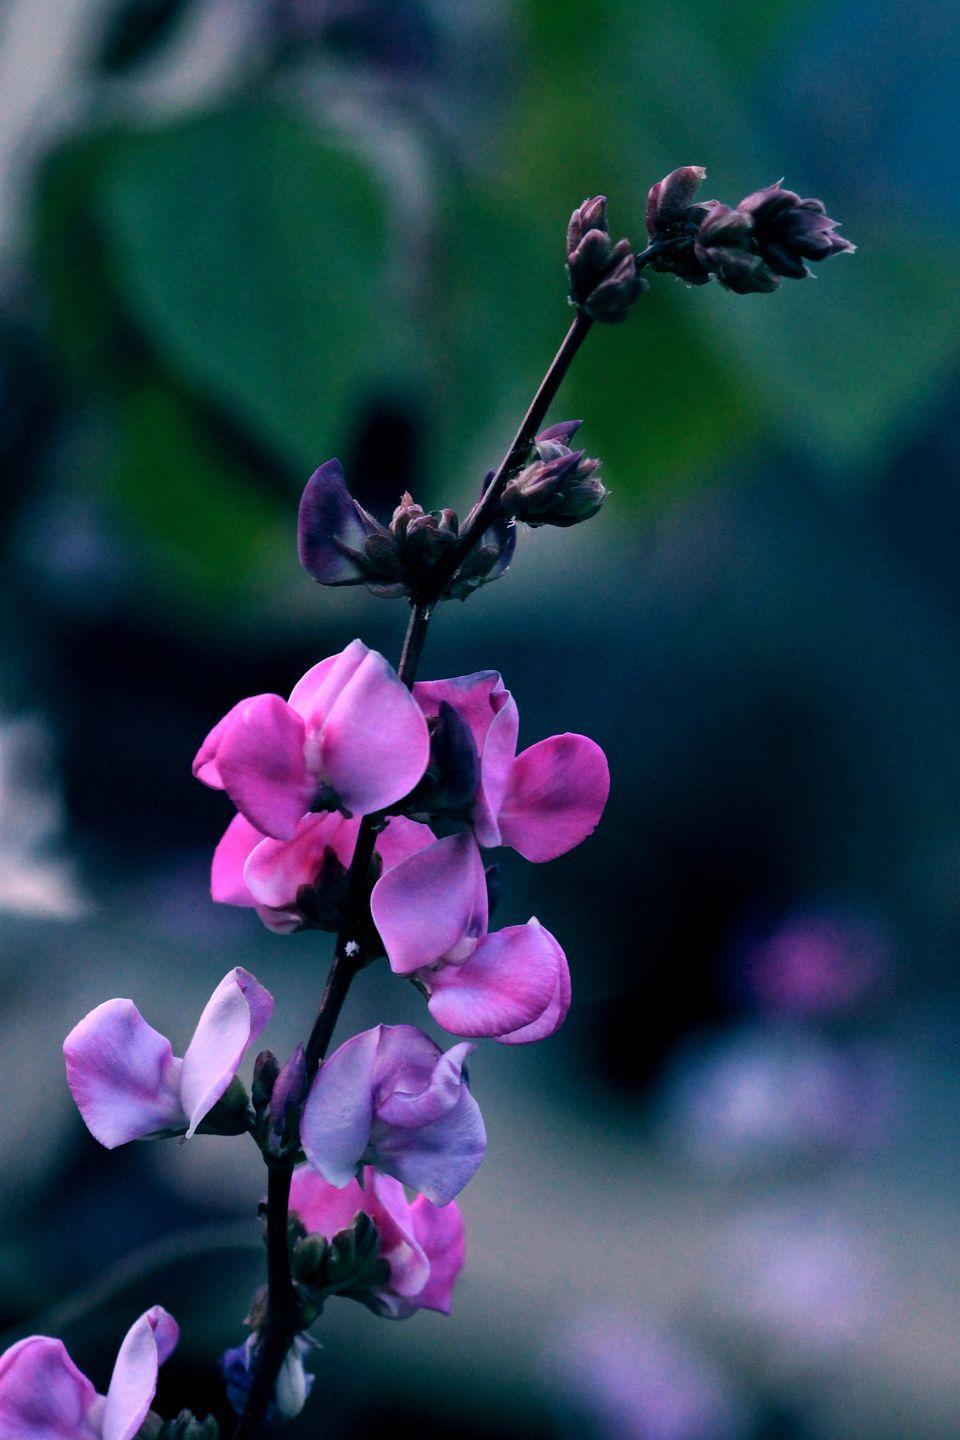 """<p>Hyacinth bean is a fast-growing ornamental vine with pretty pink or white flowers that thrive in heat. It needs a sturdy support as it can grow rapidly in one season. It likes full sun.</p><p><a class=""""link rapid-noclick-resp"""" href=""""https://go.redirectingat.com?id=74968X1596630&url=https%3A%2F%2Fwww.burpee.com%2Fflowers%2Fvines-and-climbers%2Fhyacinth-bean-vine-silver-moon-prod500768.html&sref=https%3A%2F%2Fwww.countryliving.com%2Fgardening%2Fgarden-ideas%2Fadvice%2Fg1456%2Ffast-growing-vines%2F"""" rel=""""nofollow noopener"""" target=""""_blank"""" data-ylk=""""slk:SHOP HYACINTH BEANS"""">SHOP HYACINTH BEANS</a></p>"""